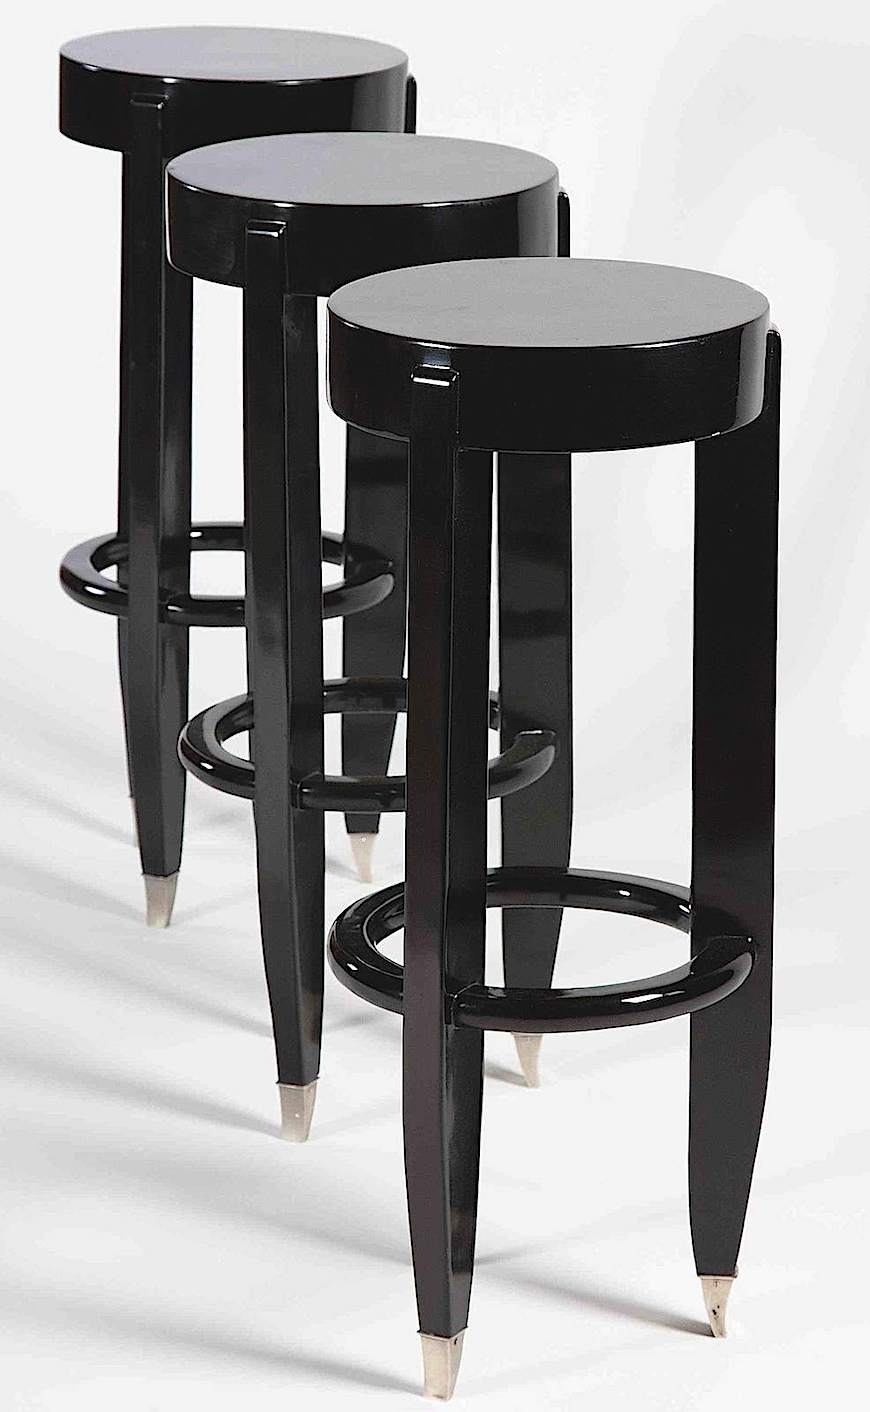 1930 black barstools, a color photograph